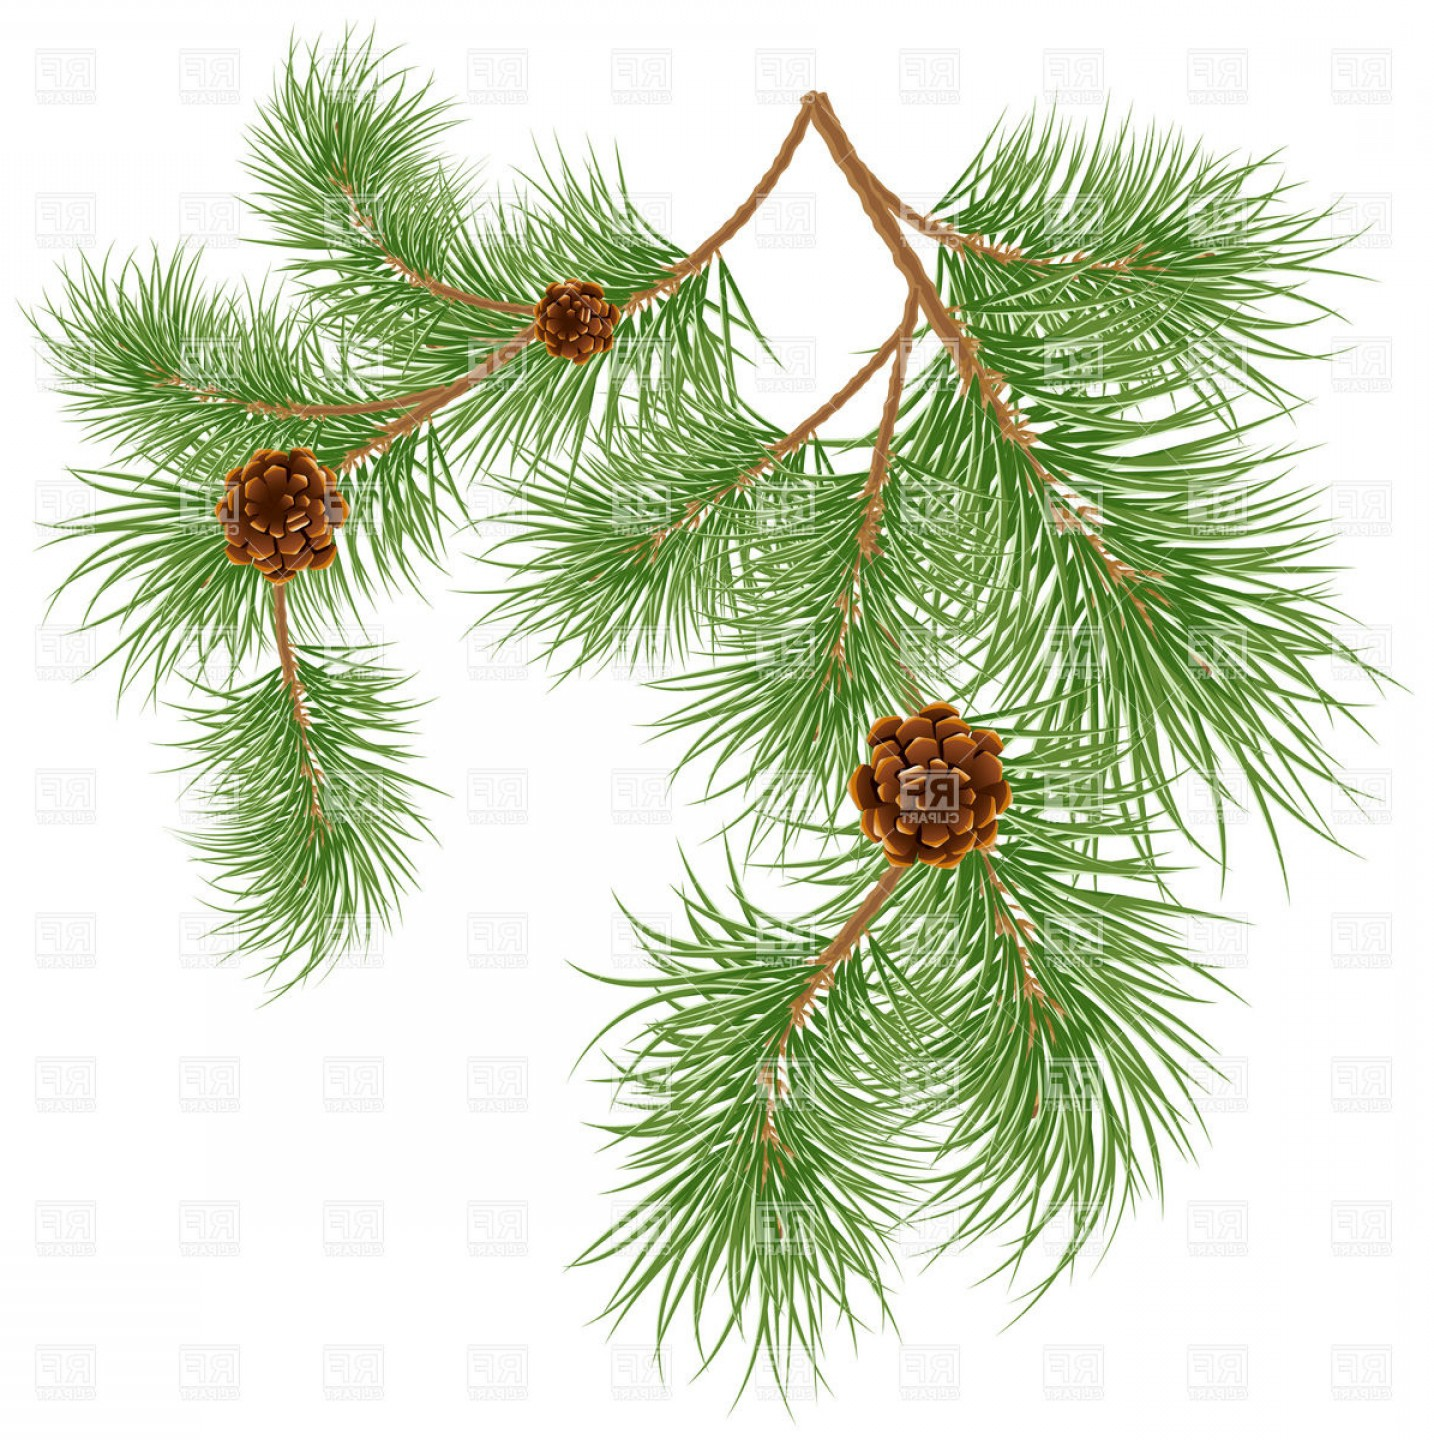 Pine Cones Strobiles And Pine Needles Vector Clipart.